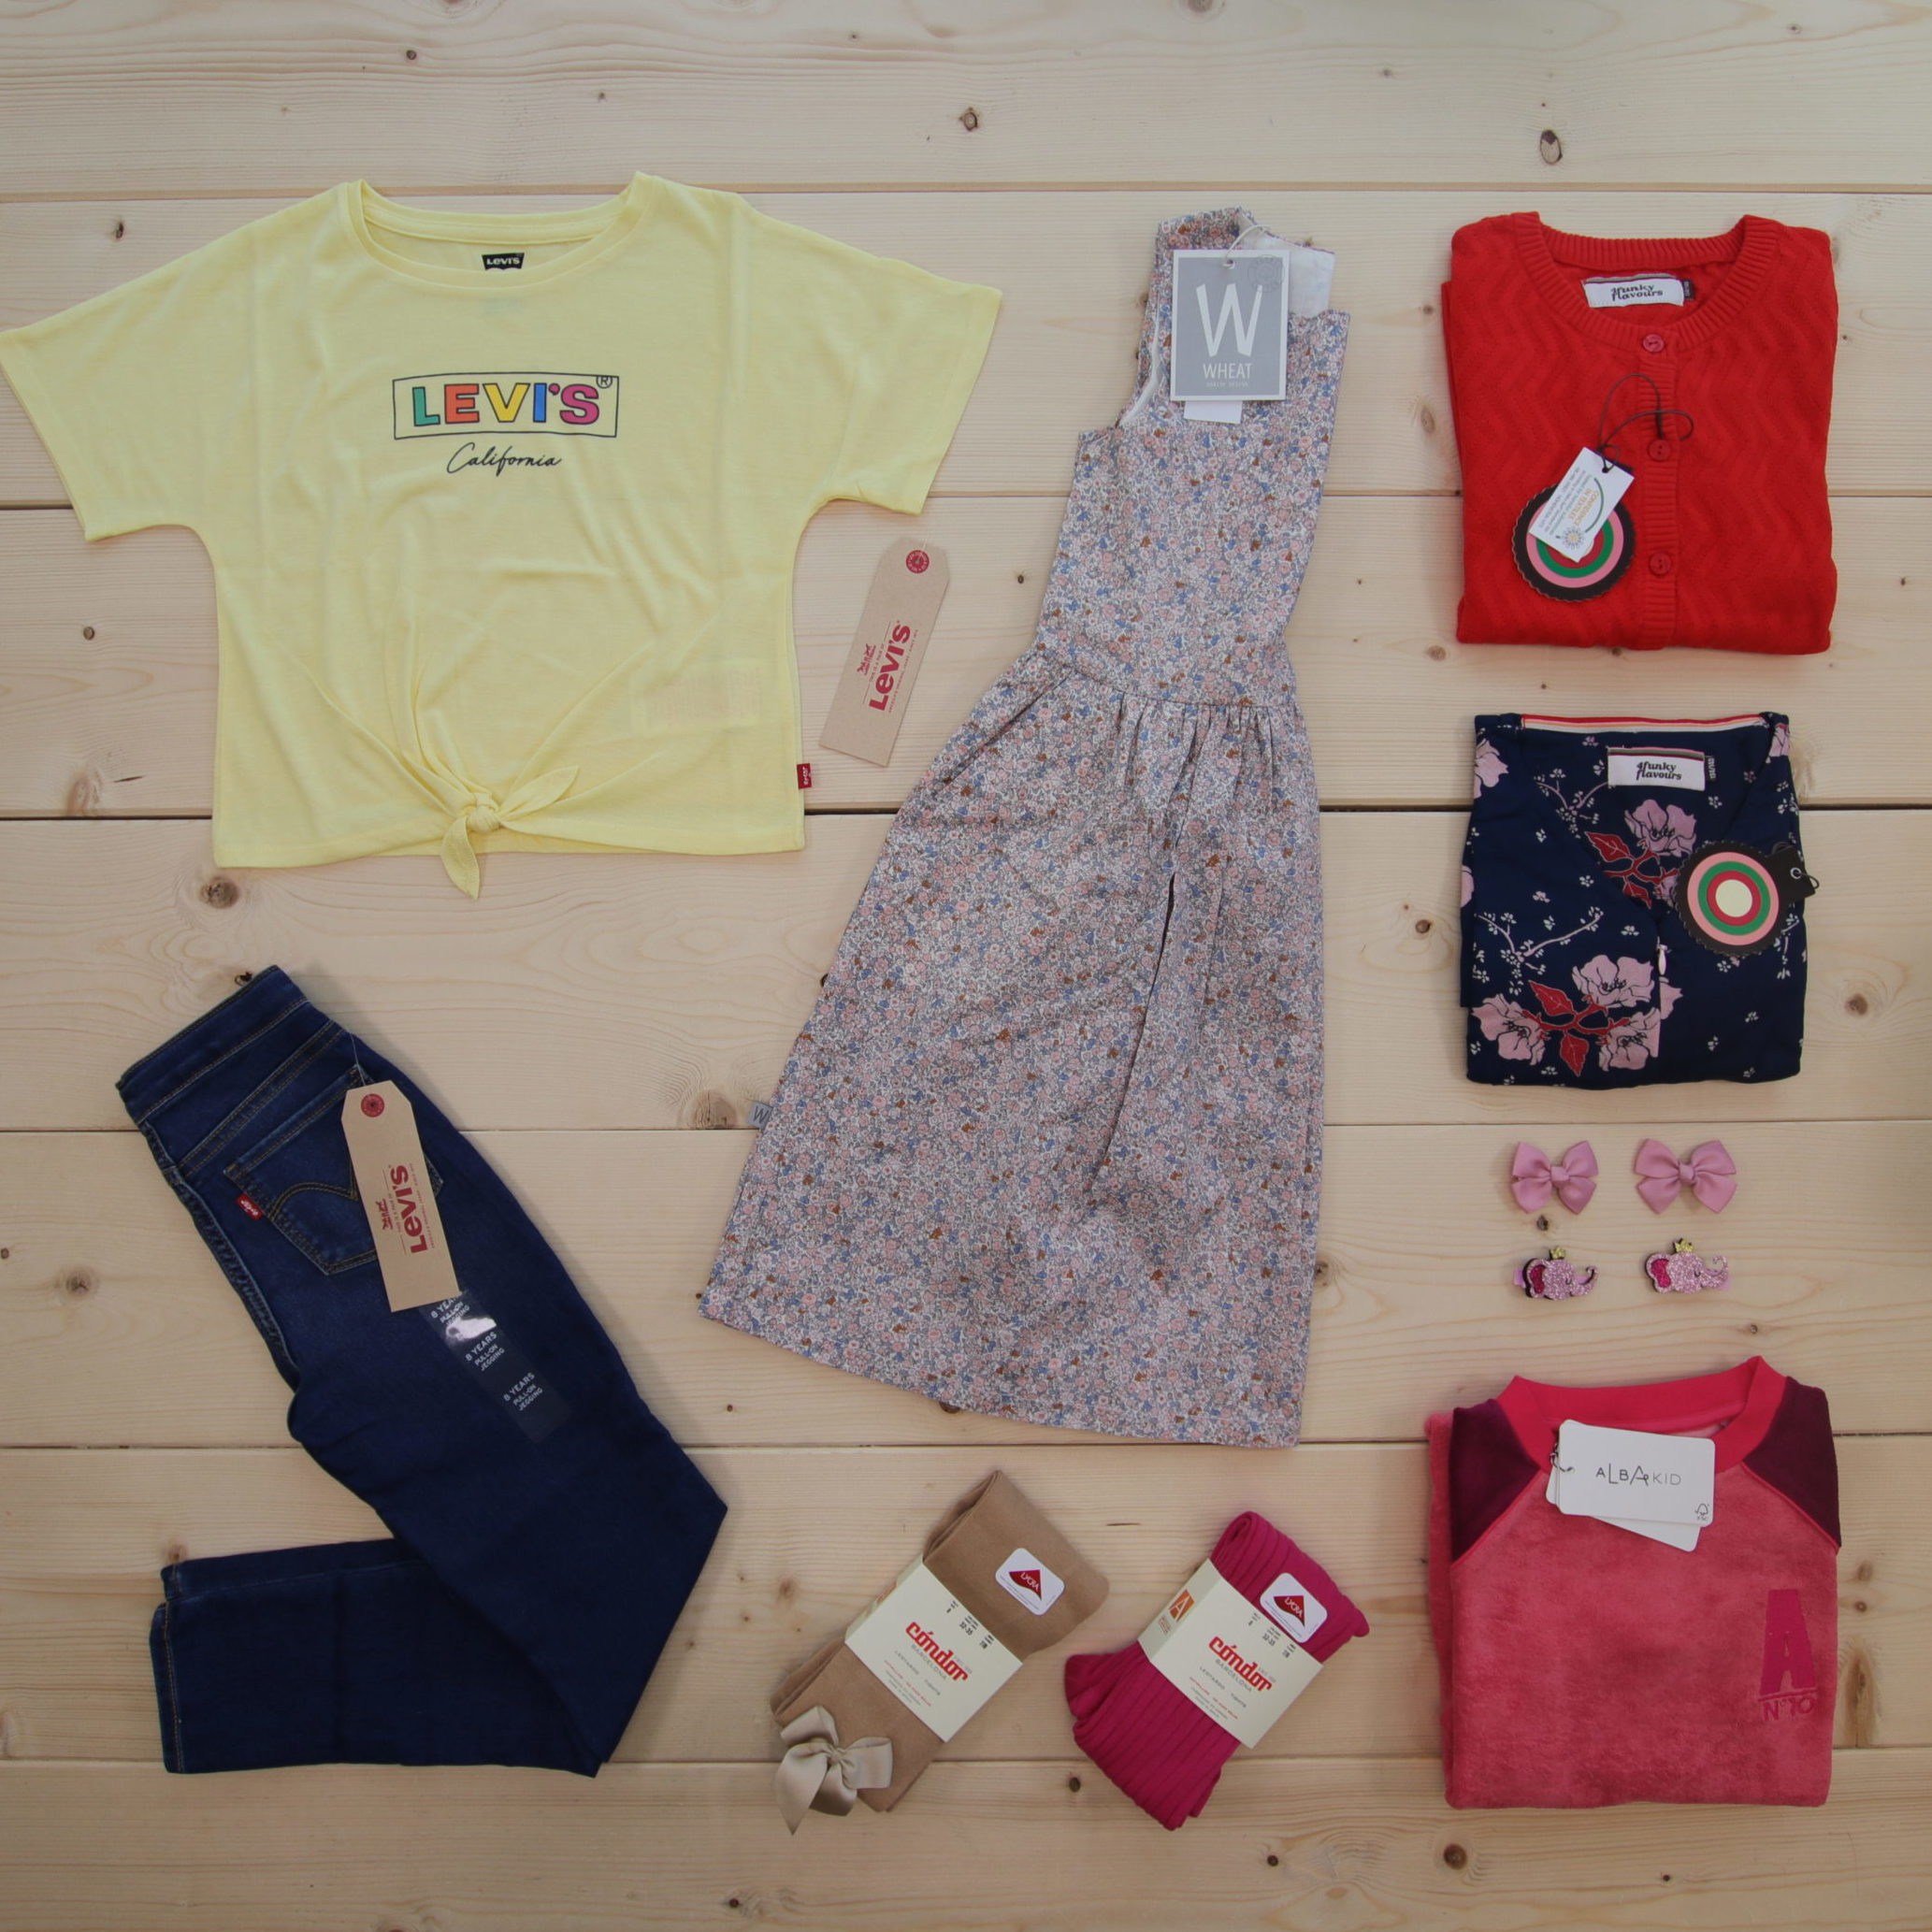 NEWS from Levi's, Wheat, 4 Funky Flavours, Alba, Cóndor, and Den lille prikken over i'en ❤️📦 #news #ss20  This is a 4000 NOK* Småkassen that we prepared for a girl  in the styles cute, cool, and colorful in size 134